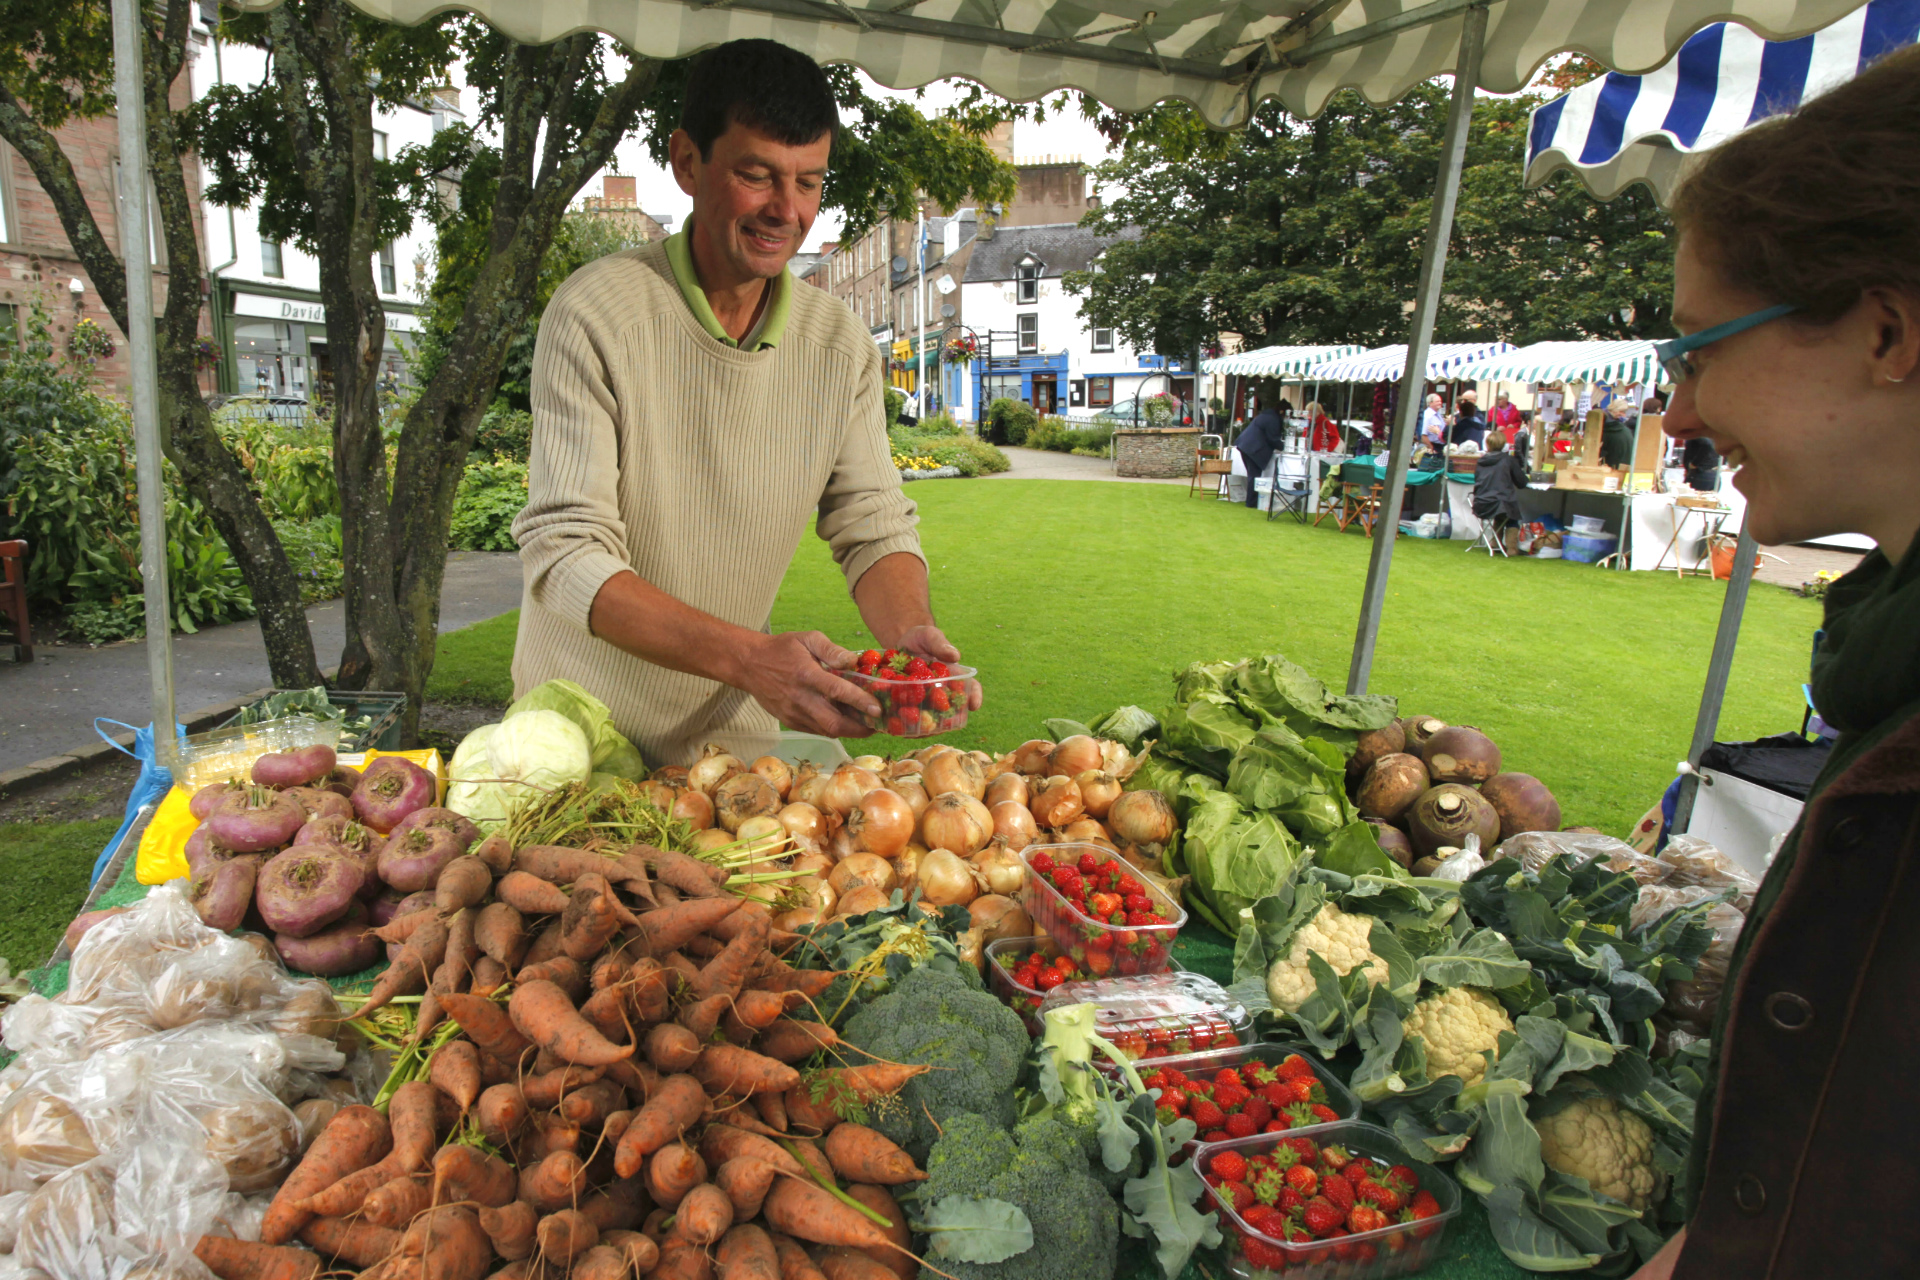 Farmers Market Nutrition Program